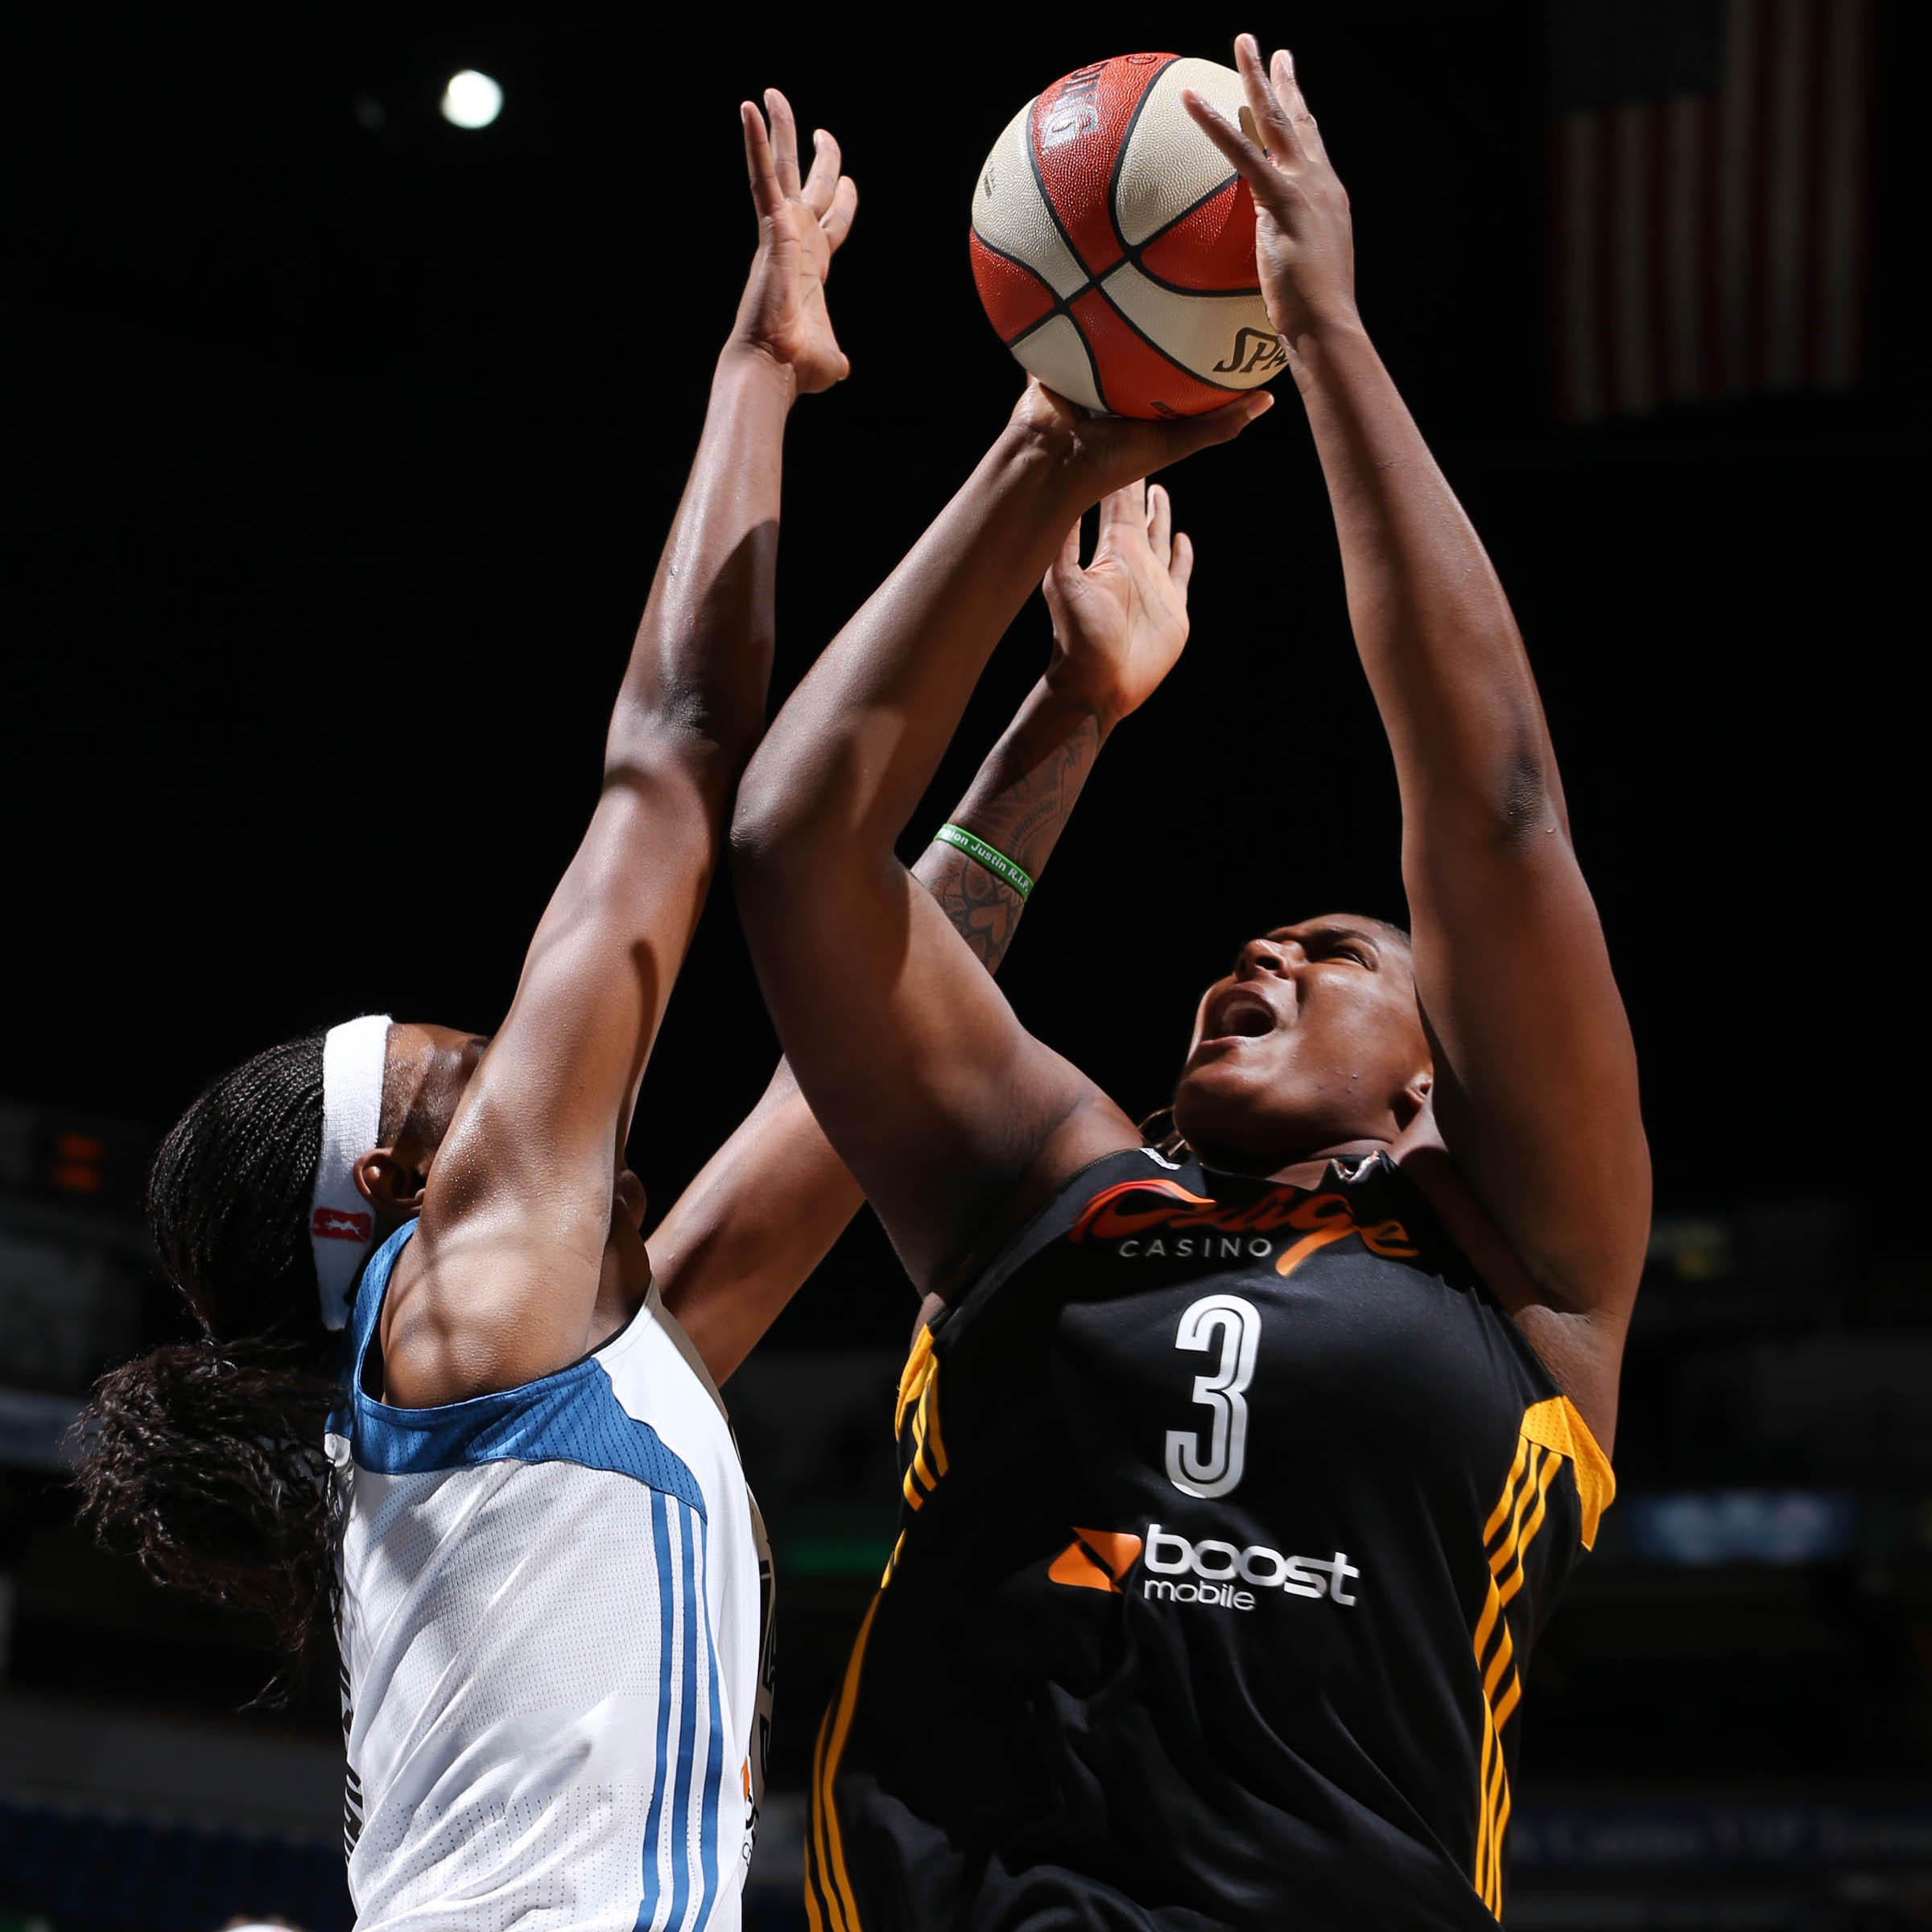 Shock center Courtney Paris provided Tulsa with multiple second-chances and helped the Shock control the paint. Paris finished with 16 points and 11 rebounds.